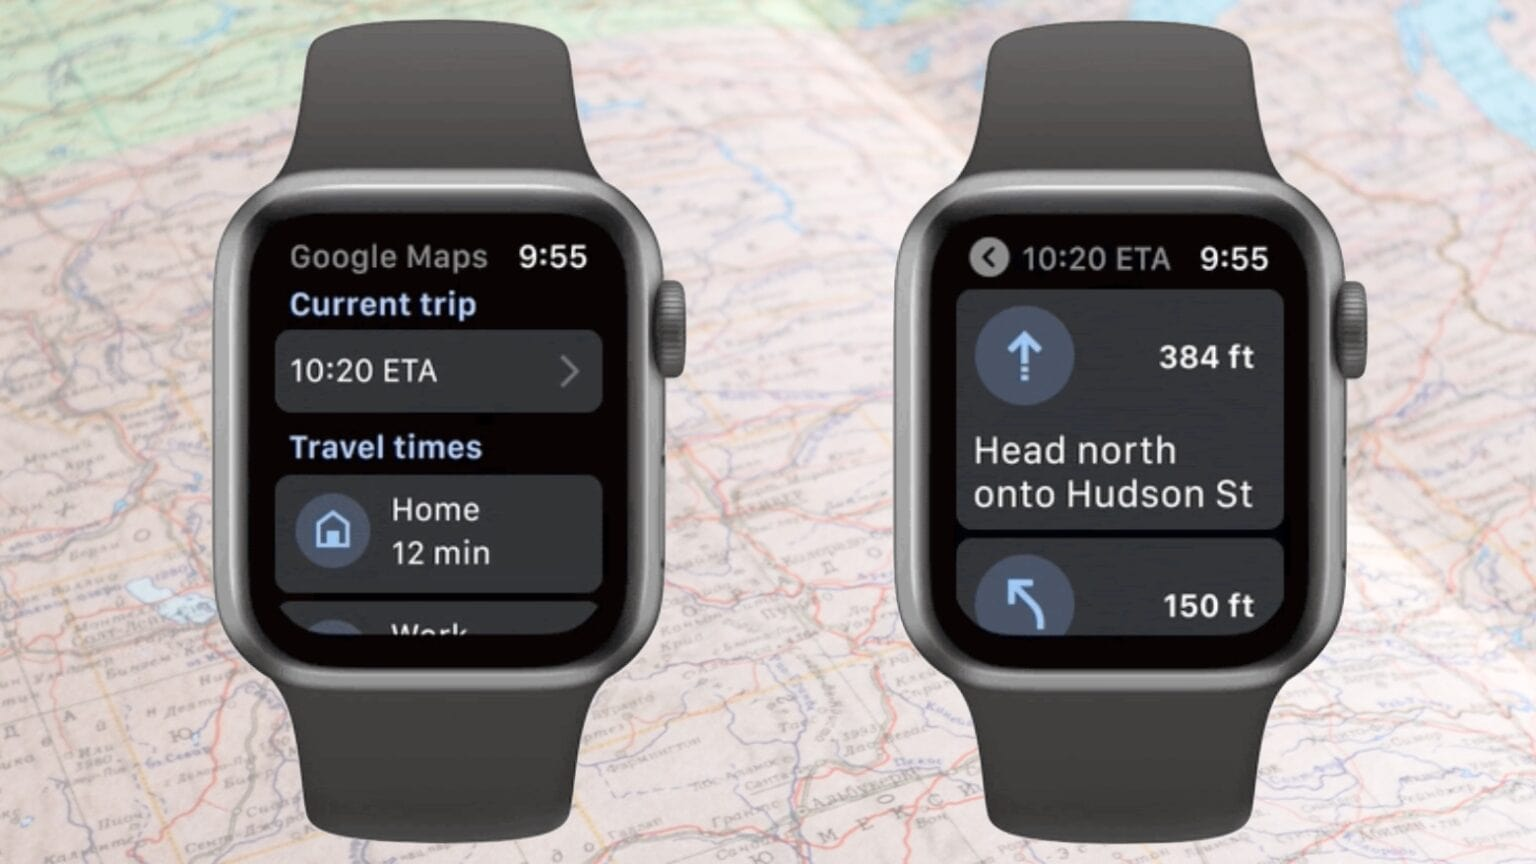 Google Maps on an Apple Watch